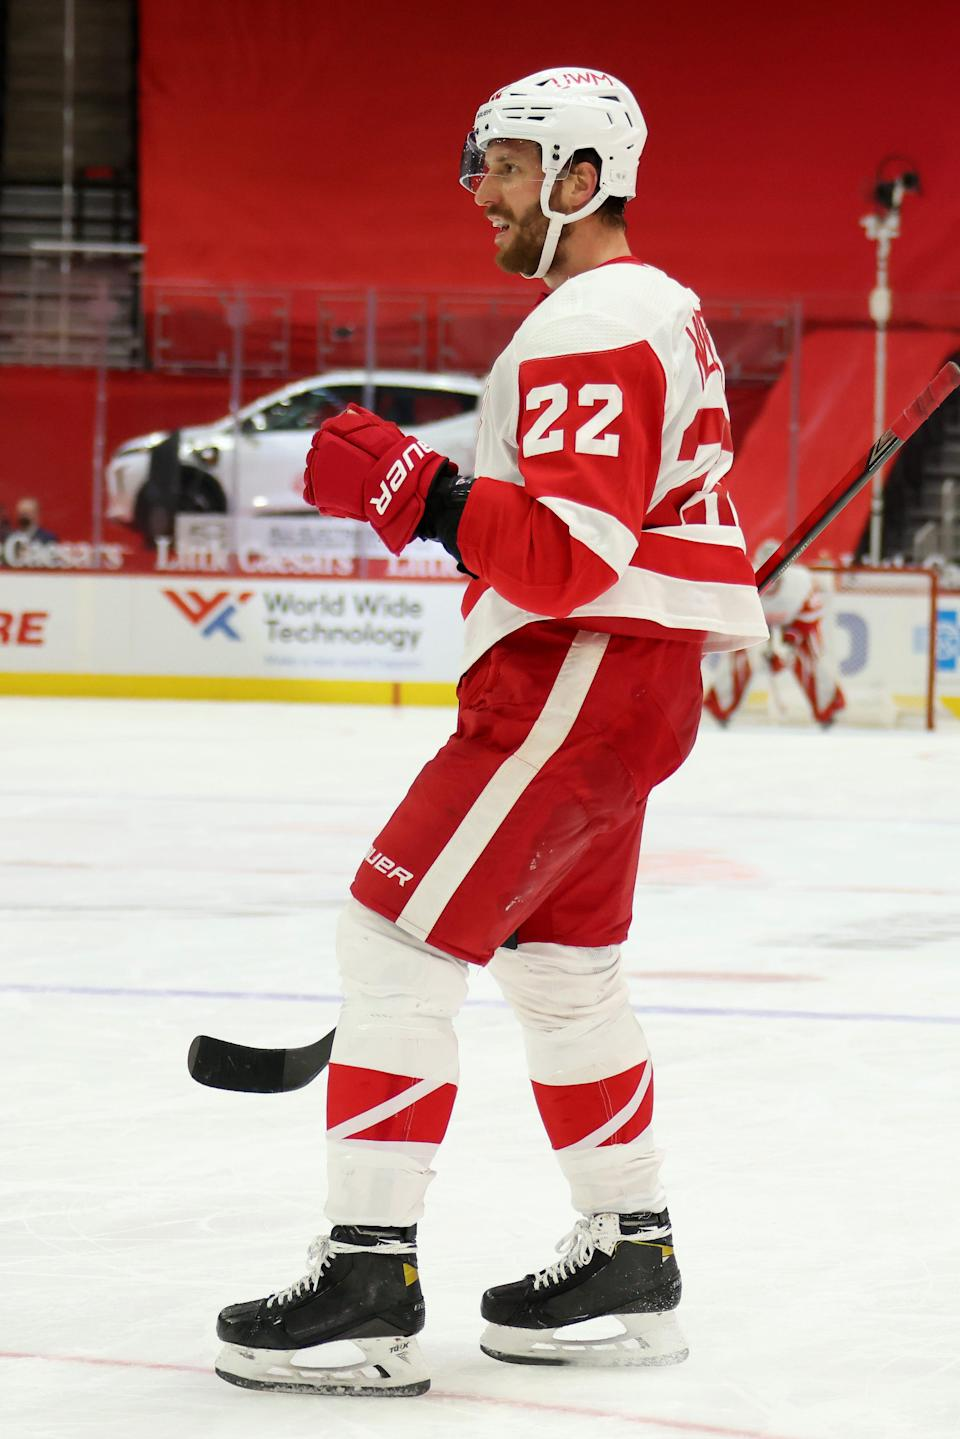 Red Wings defenseman Patrik Nemeth celebrates his goal while in the second period of the Wings' 2-1 win on Saturday, Feb. 20, 2021, at Little Caesars Arena.